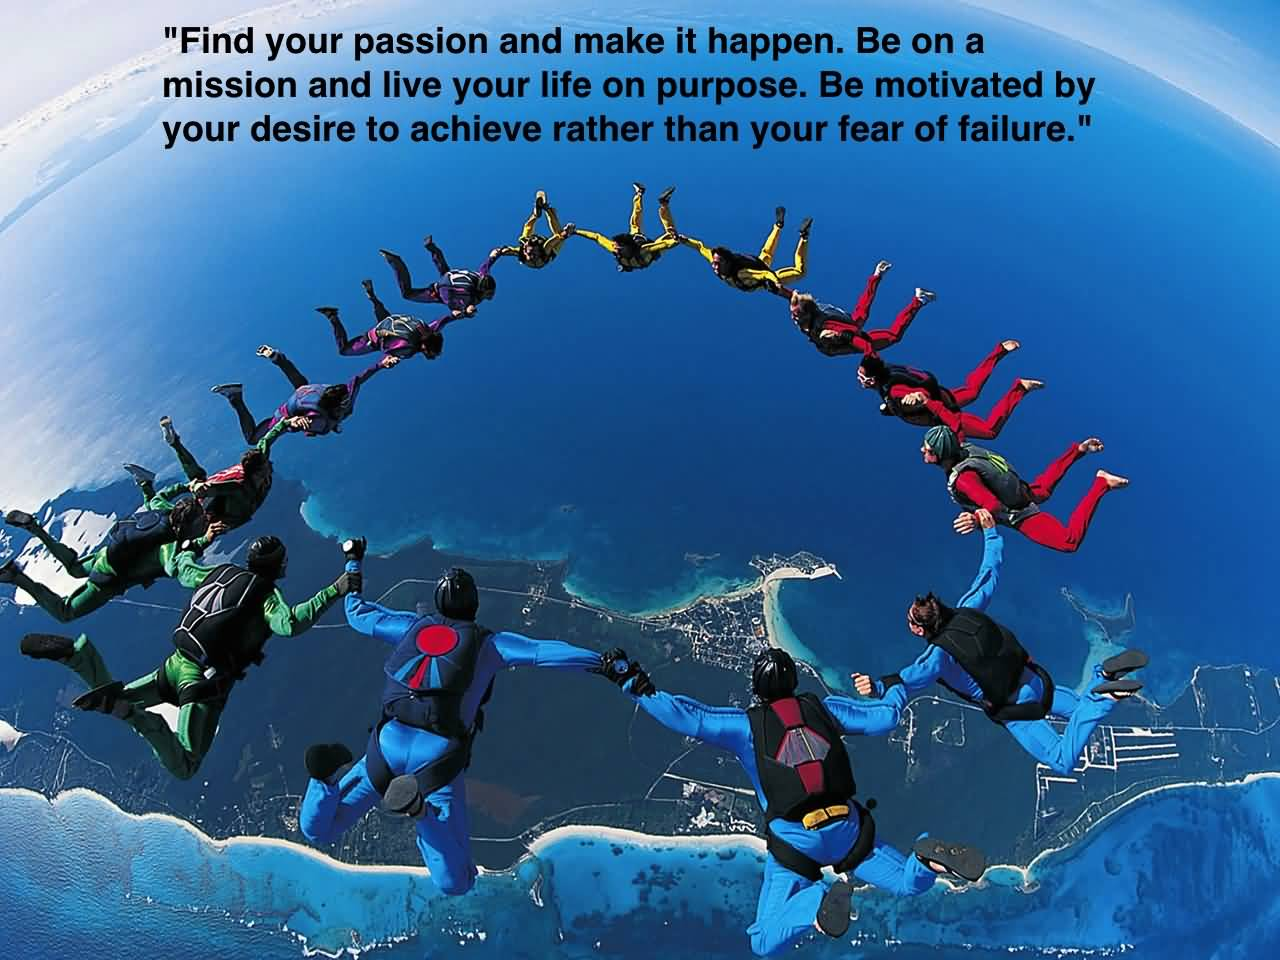 Passion Quotes Find Your Passion And Make It Happen. Be On A Mission And Live Your Life